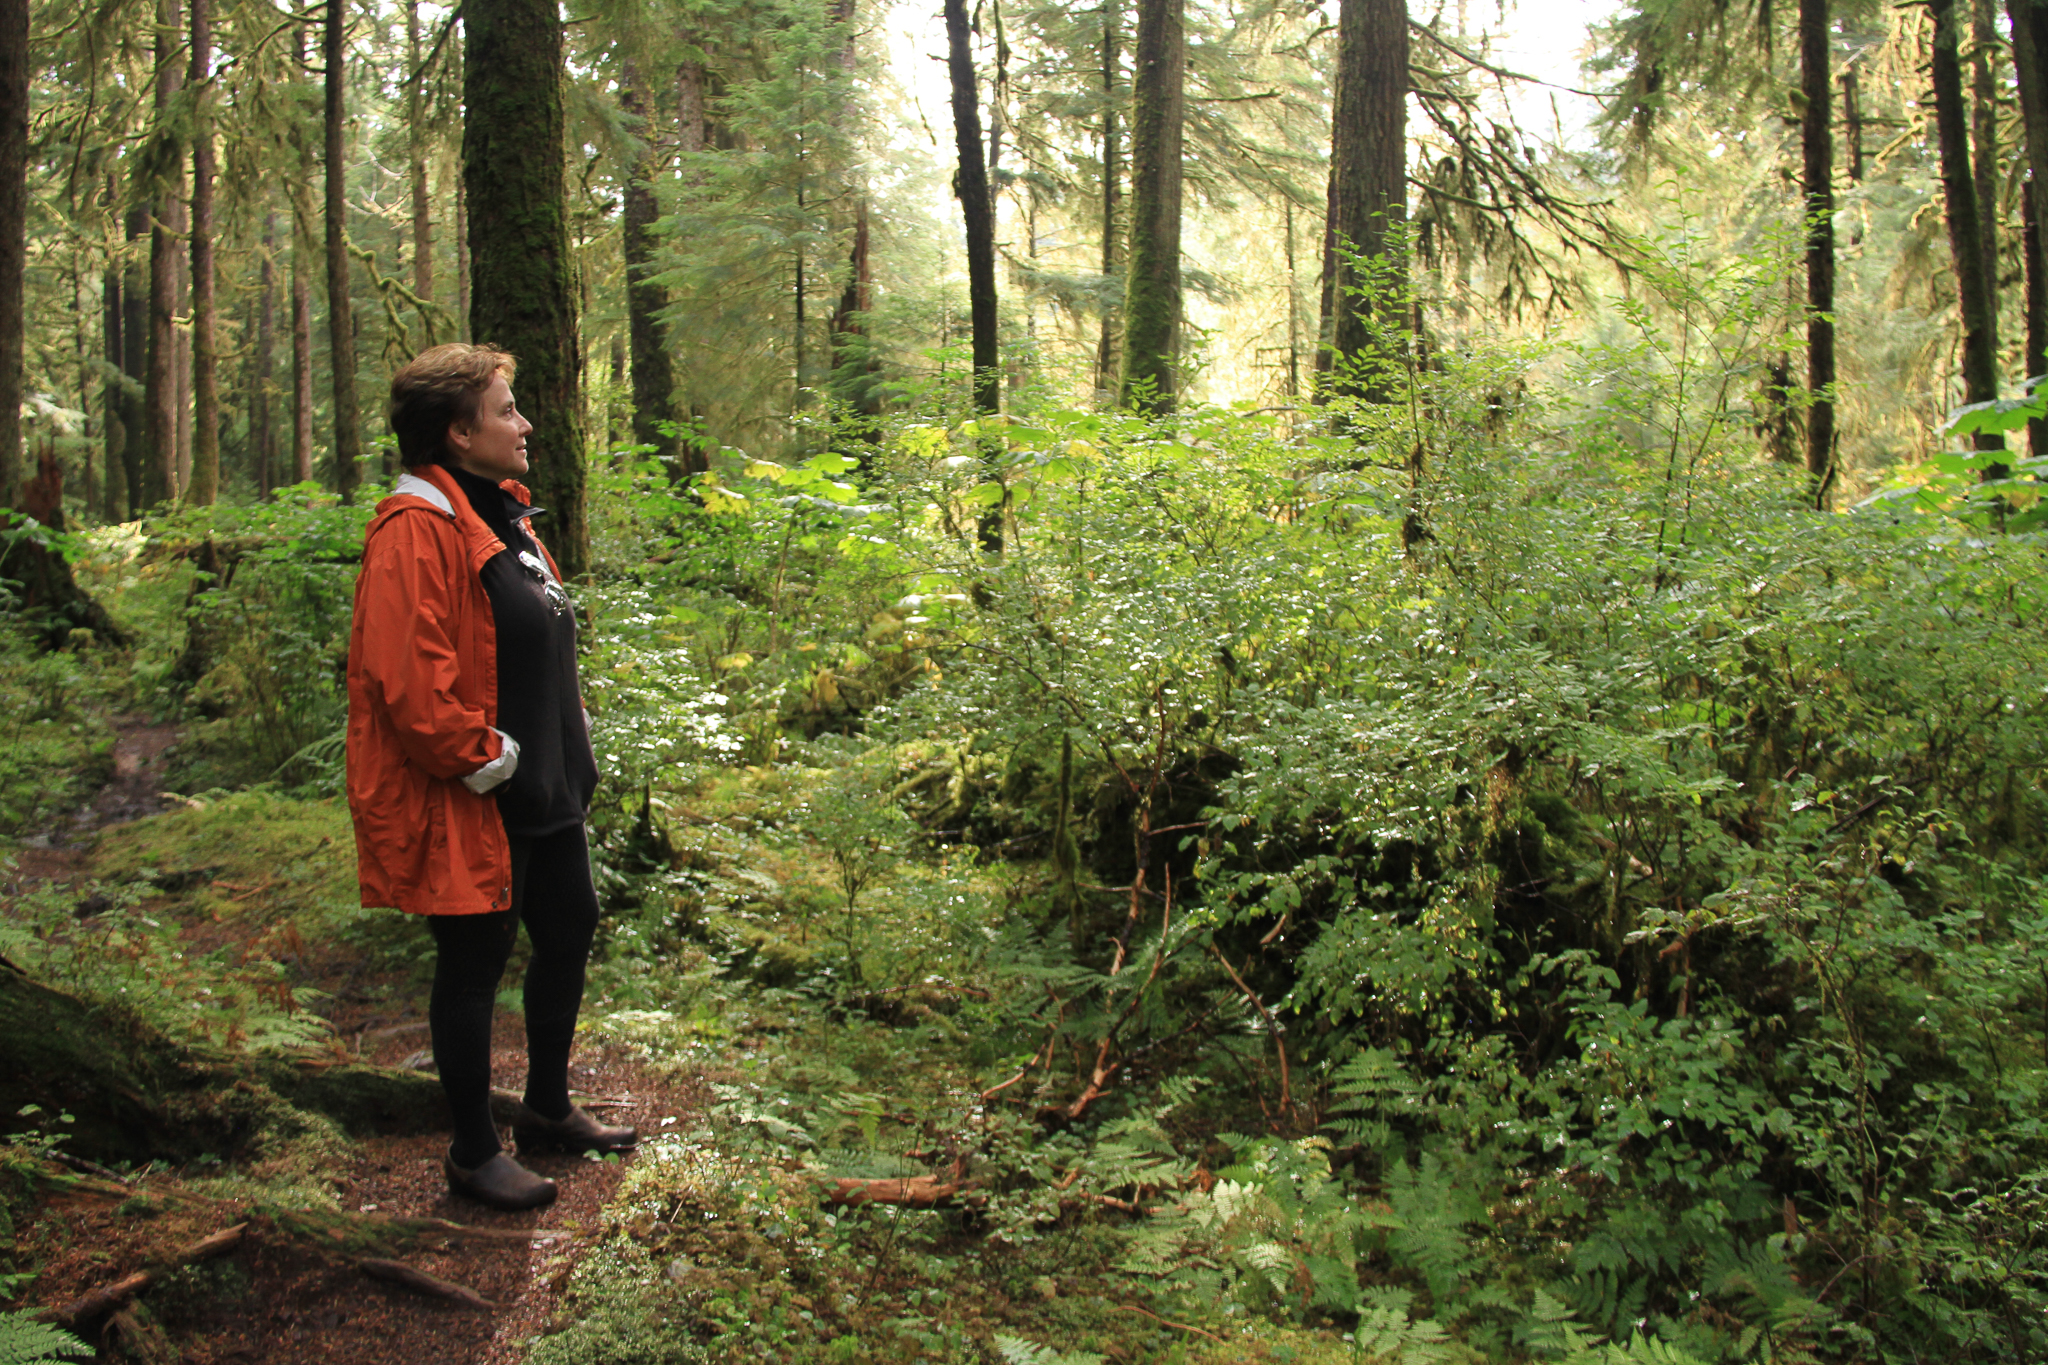 Oregon wood products engineer Catherine Mater visits an old-growth forest in the Honker Divide on Prince of Wales Island. Mater is one of many working to figure out how to transition more quickly from old-growth to young-growth logging.